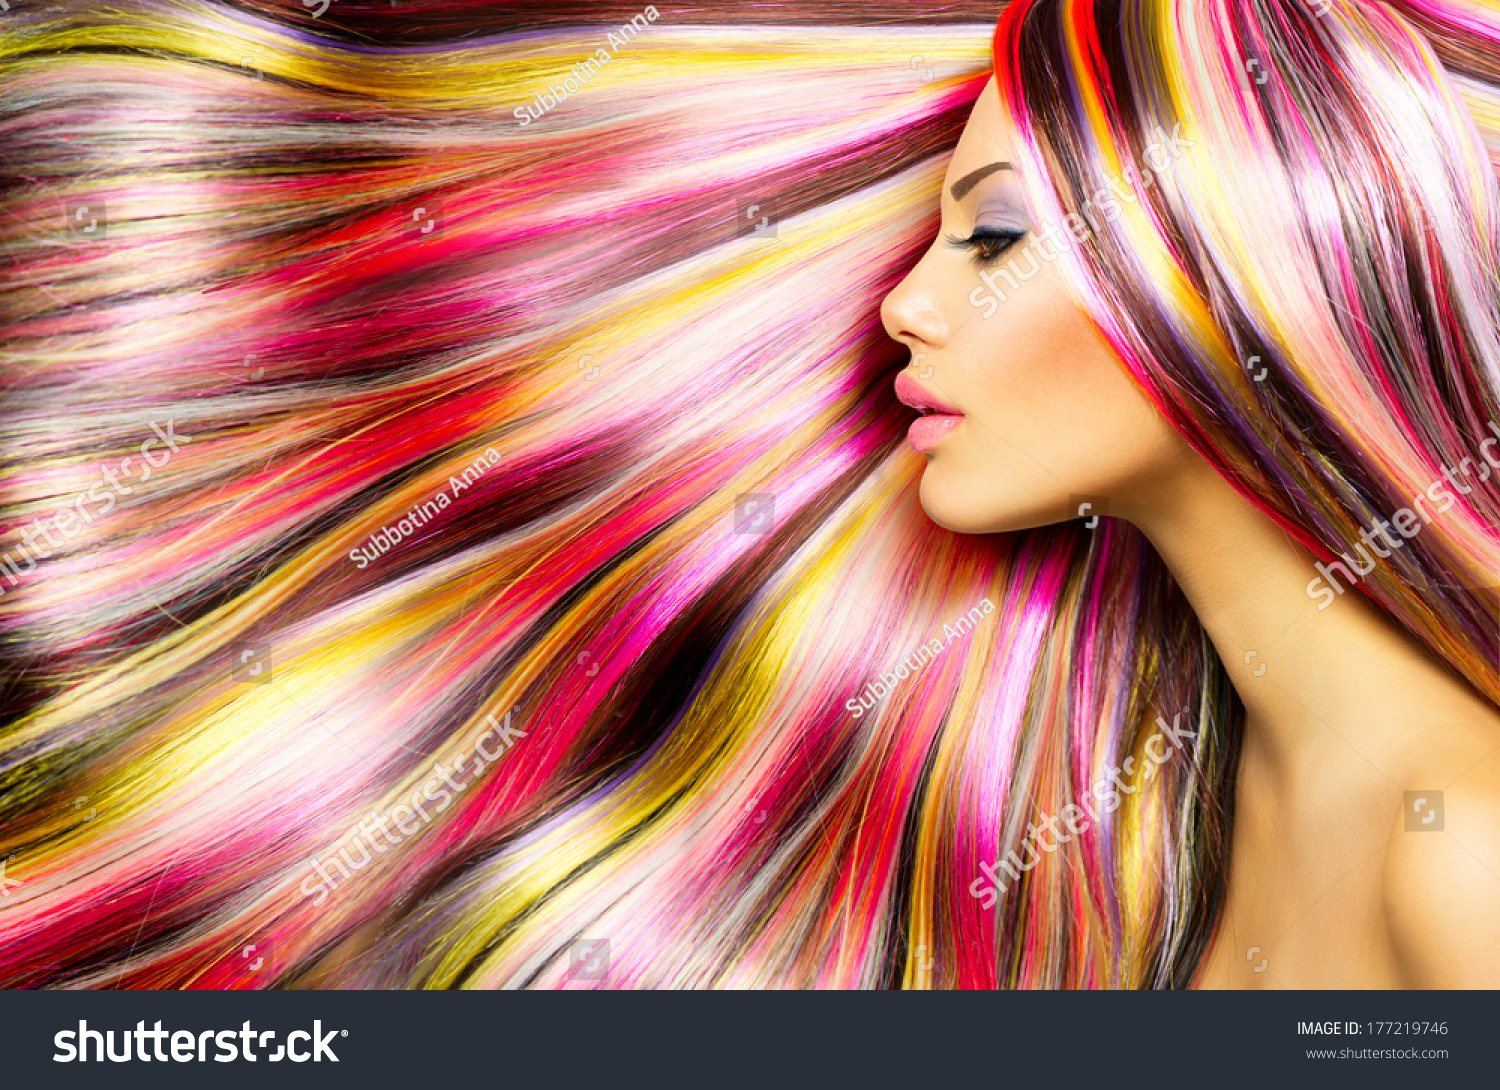 beauty fashion model girl with colorful dyed hair colourful long hair